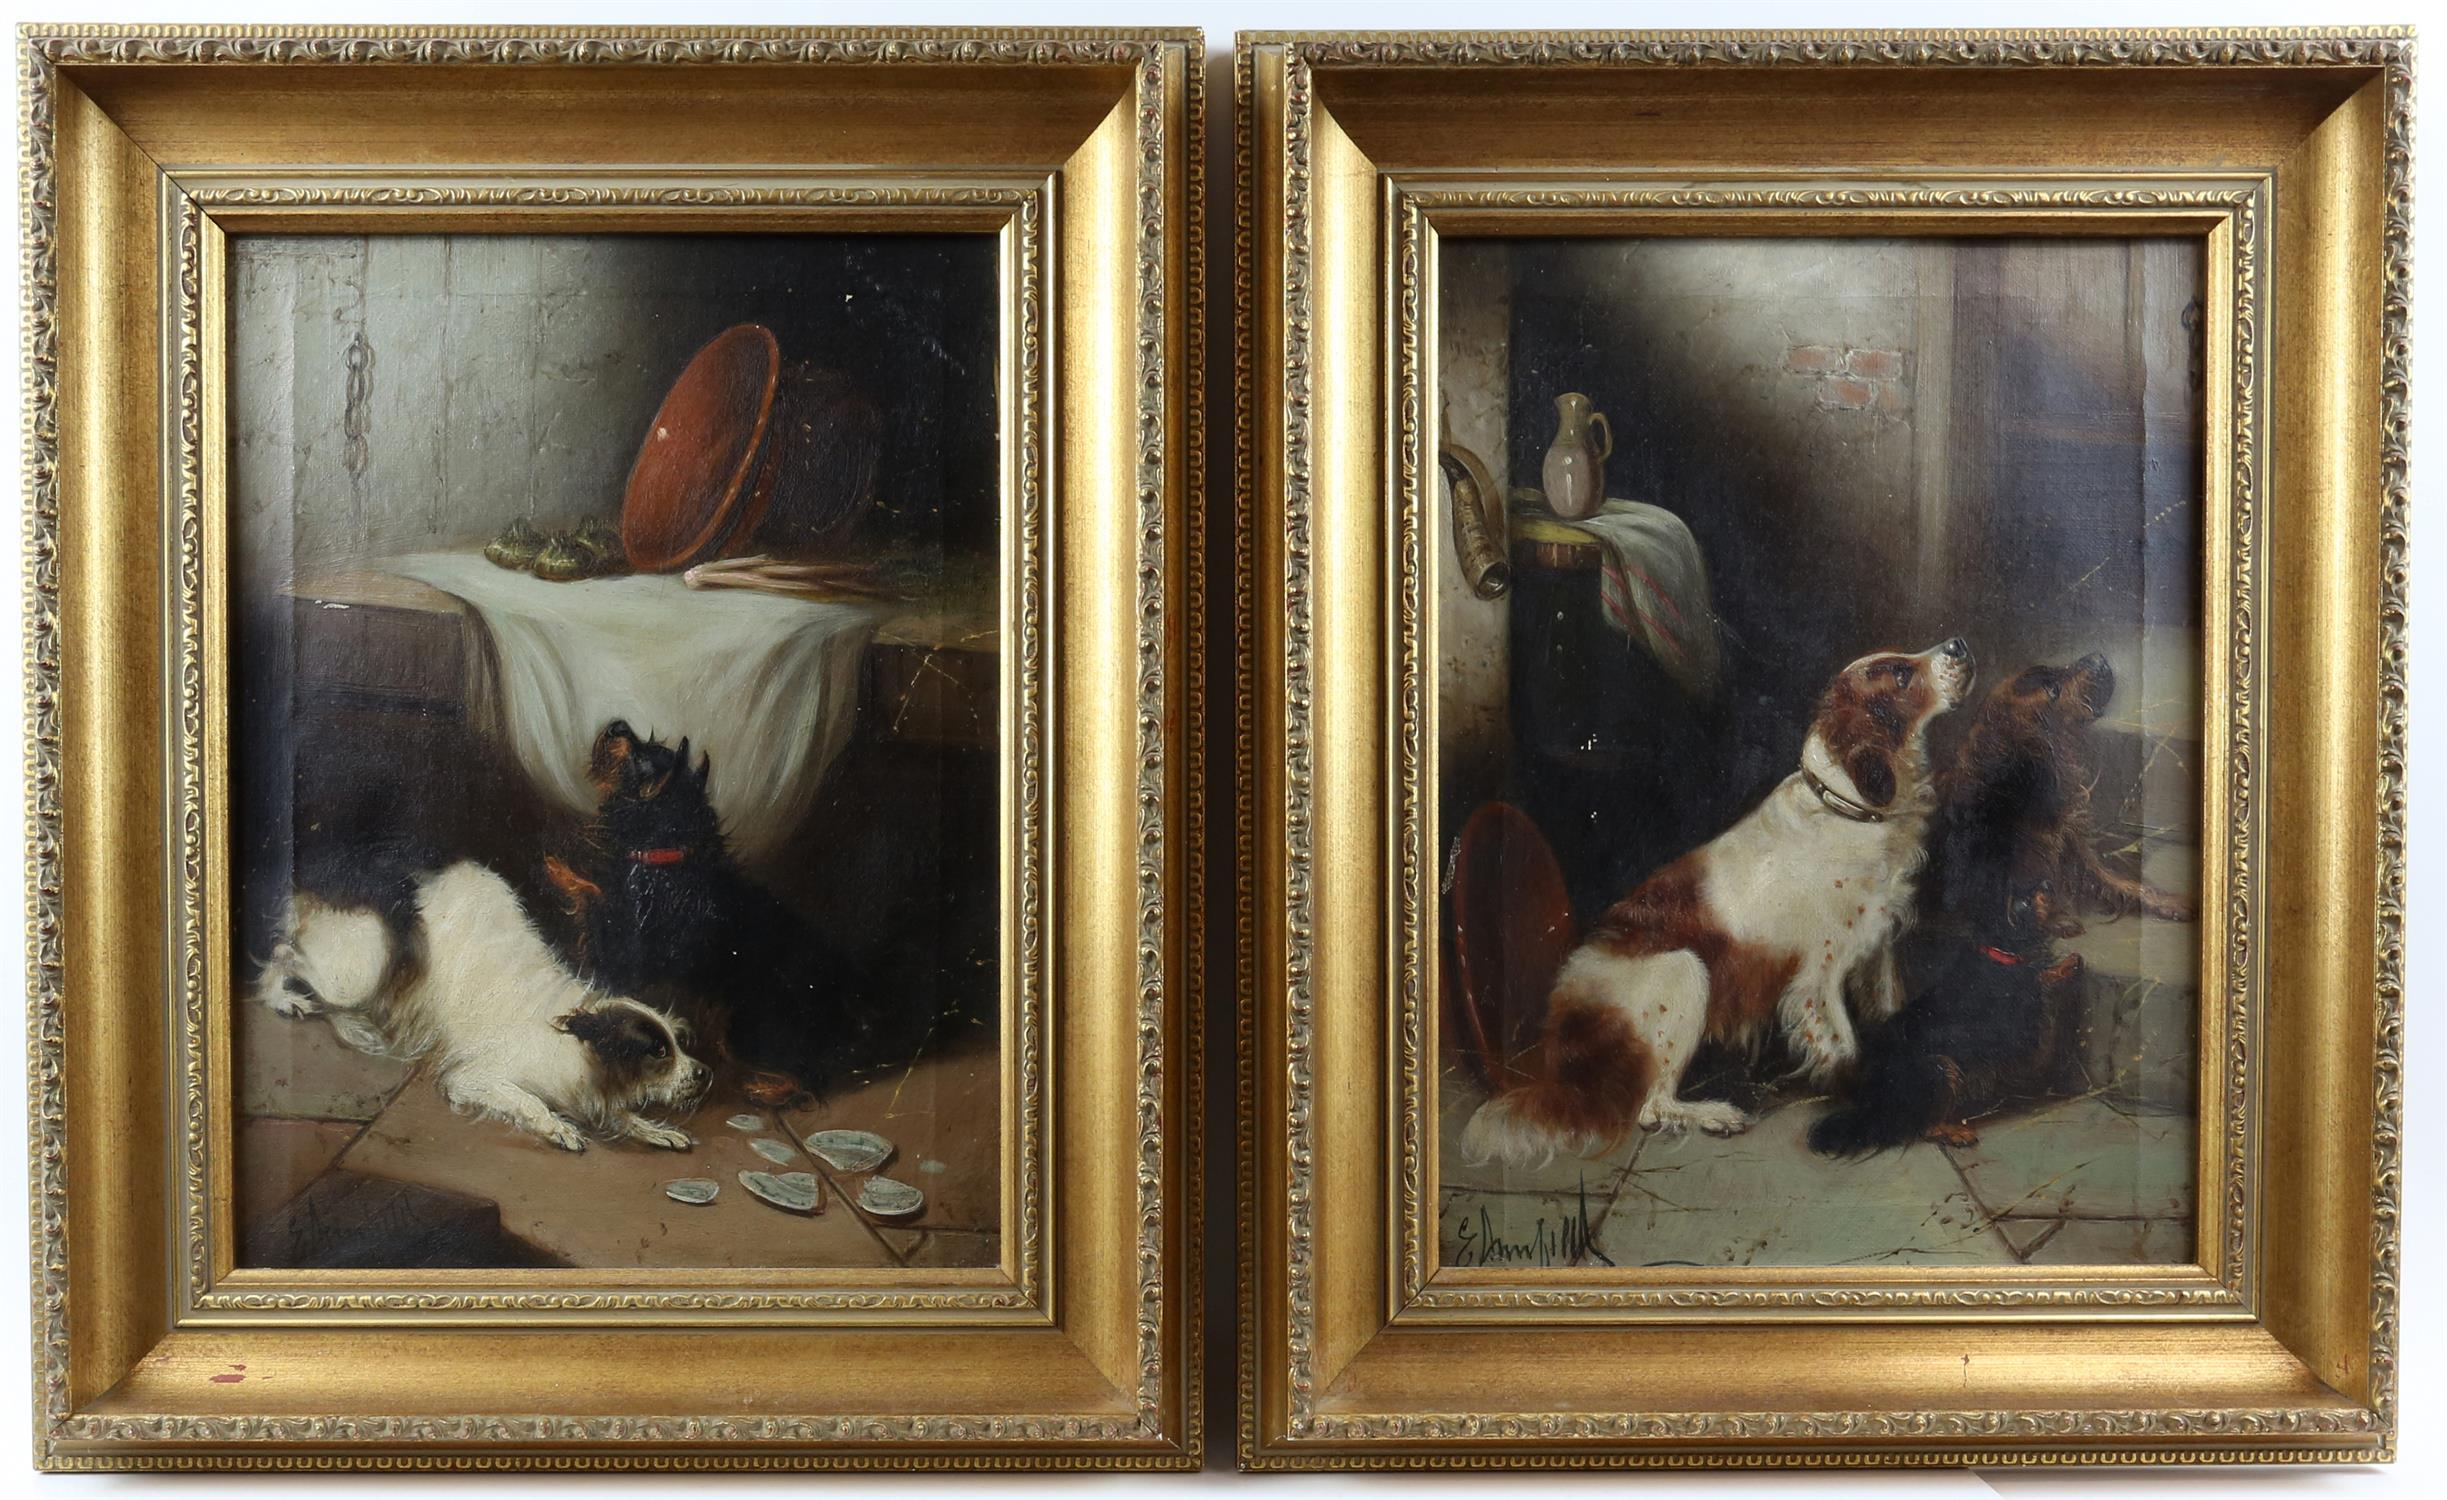 Edward Armfield (British, 1817-1896) 'Waiting for Master'; and 'Terriers Misbehaving', both signed,